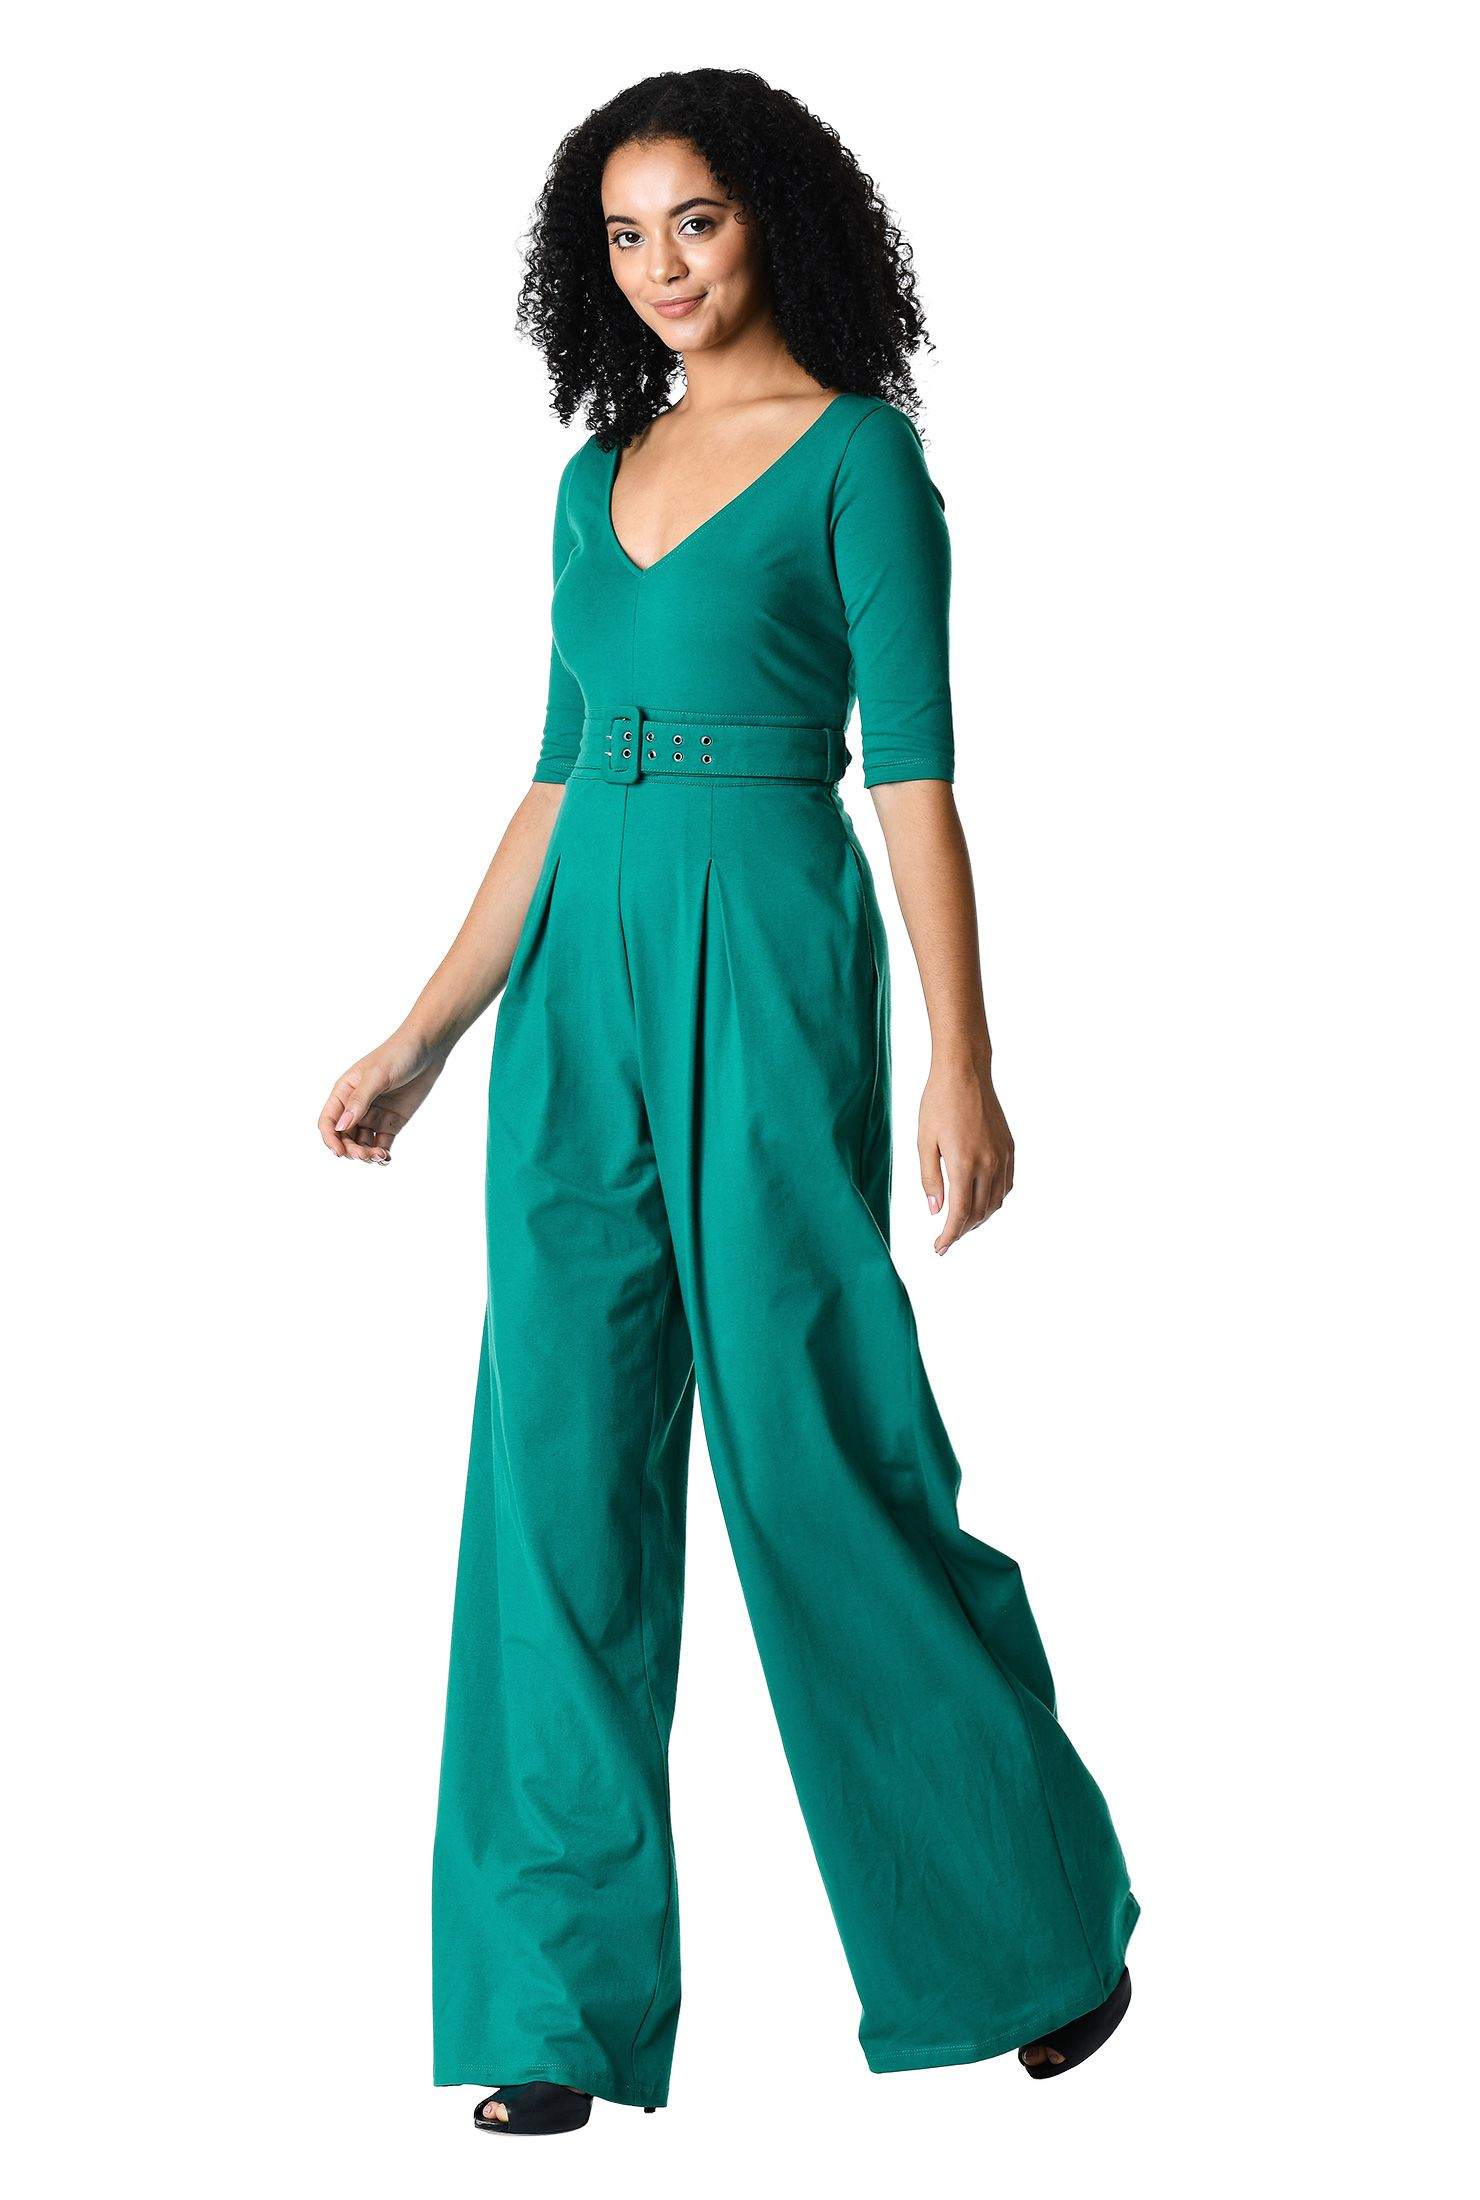 e475007060b8 Make the most of the seventies trend in our flattering cotton knit jumpsuit  topped with a V-neckline and finished with flowing wide legs.